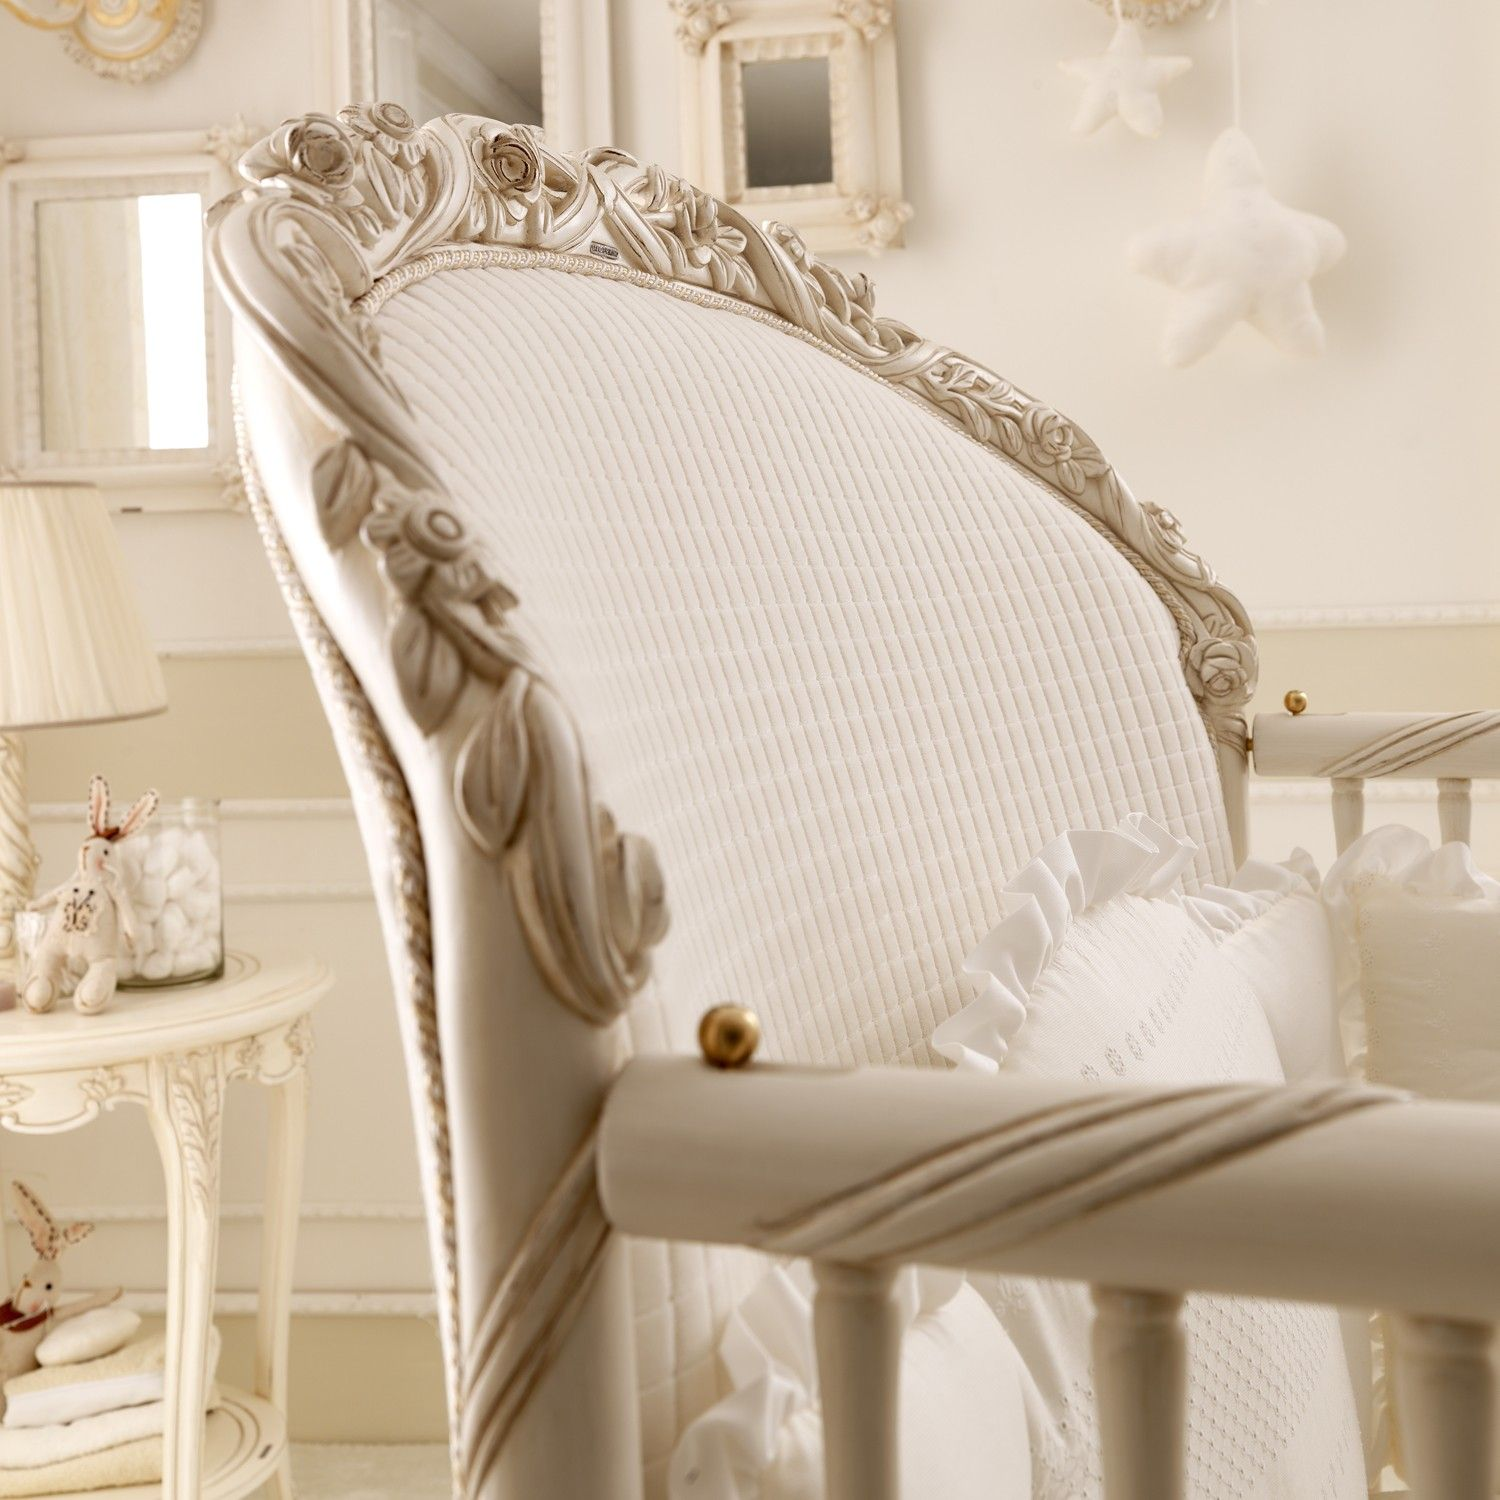 notte fatata | crib | newborn bedroom | furniture for baby's room, Innenarchitektur ideen